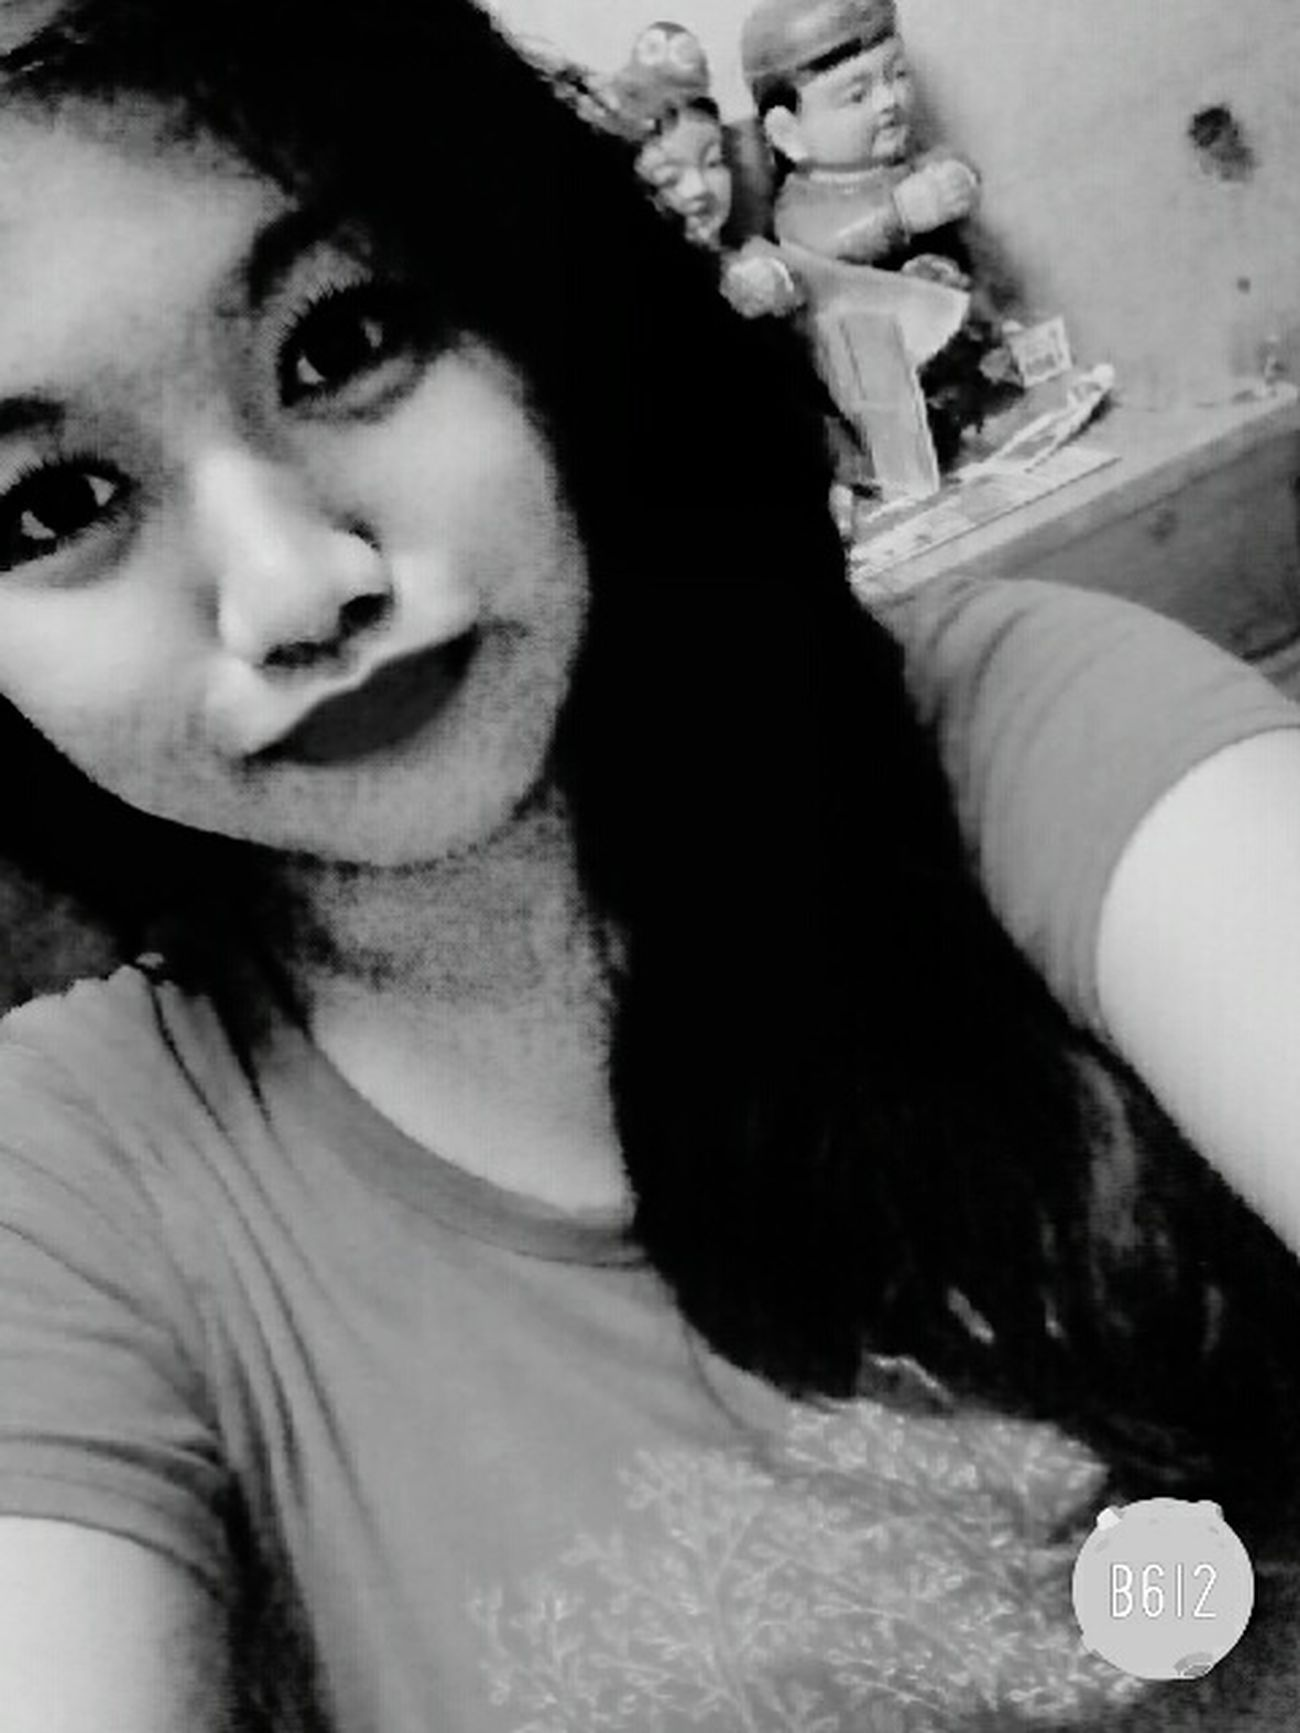 Lovemelikeyoudo Tryinghard My Lips ♥ Confidence  Love My Self <3 Proud To Be Me Todays Hotlook